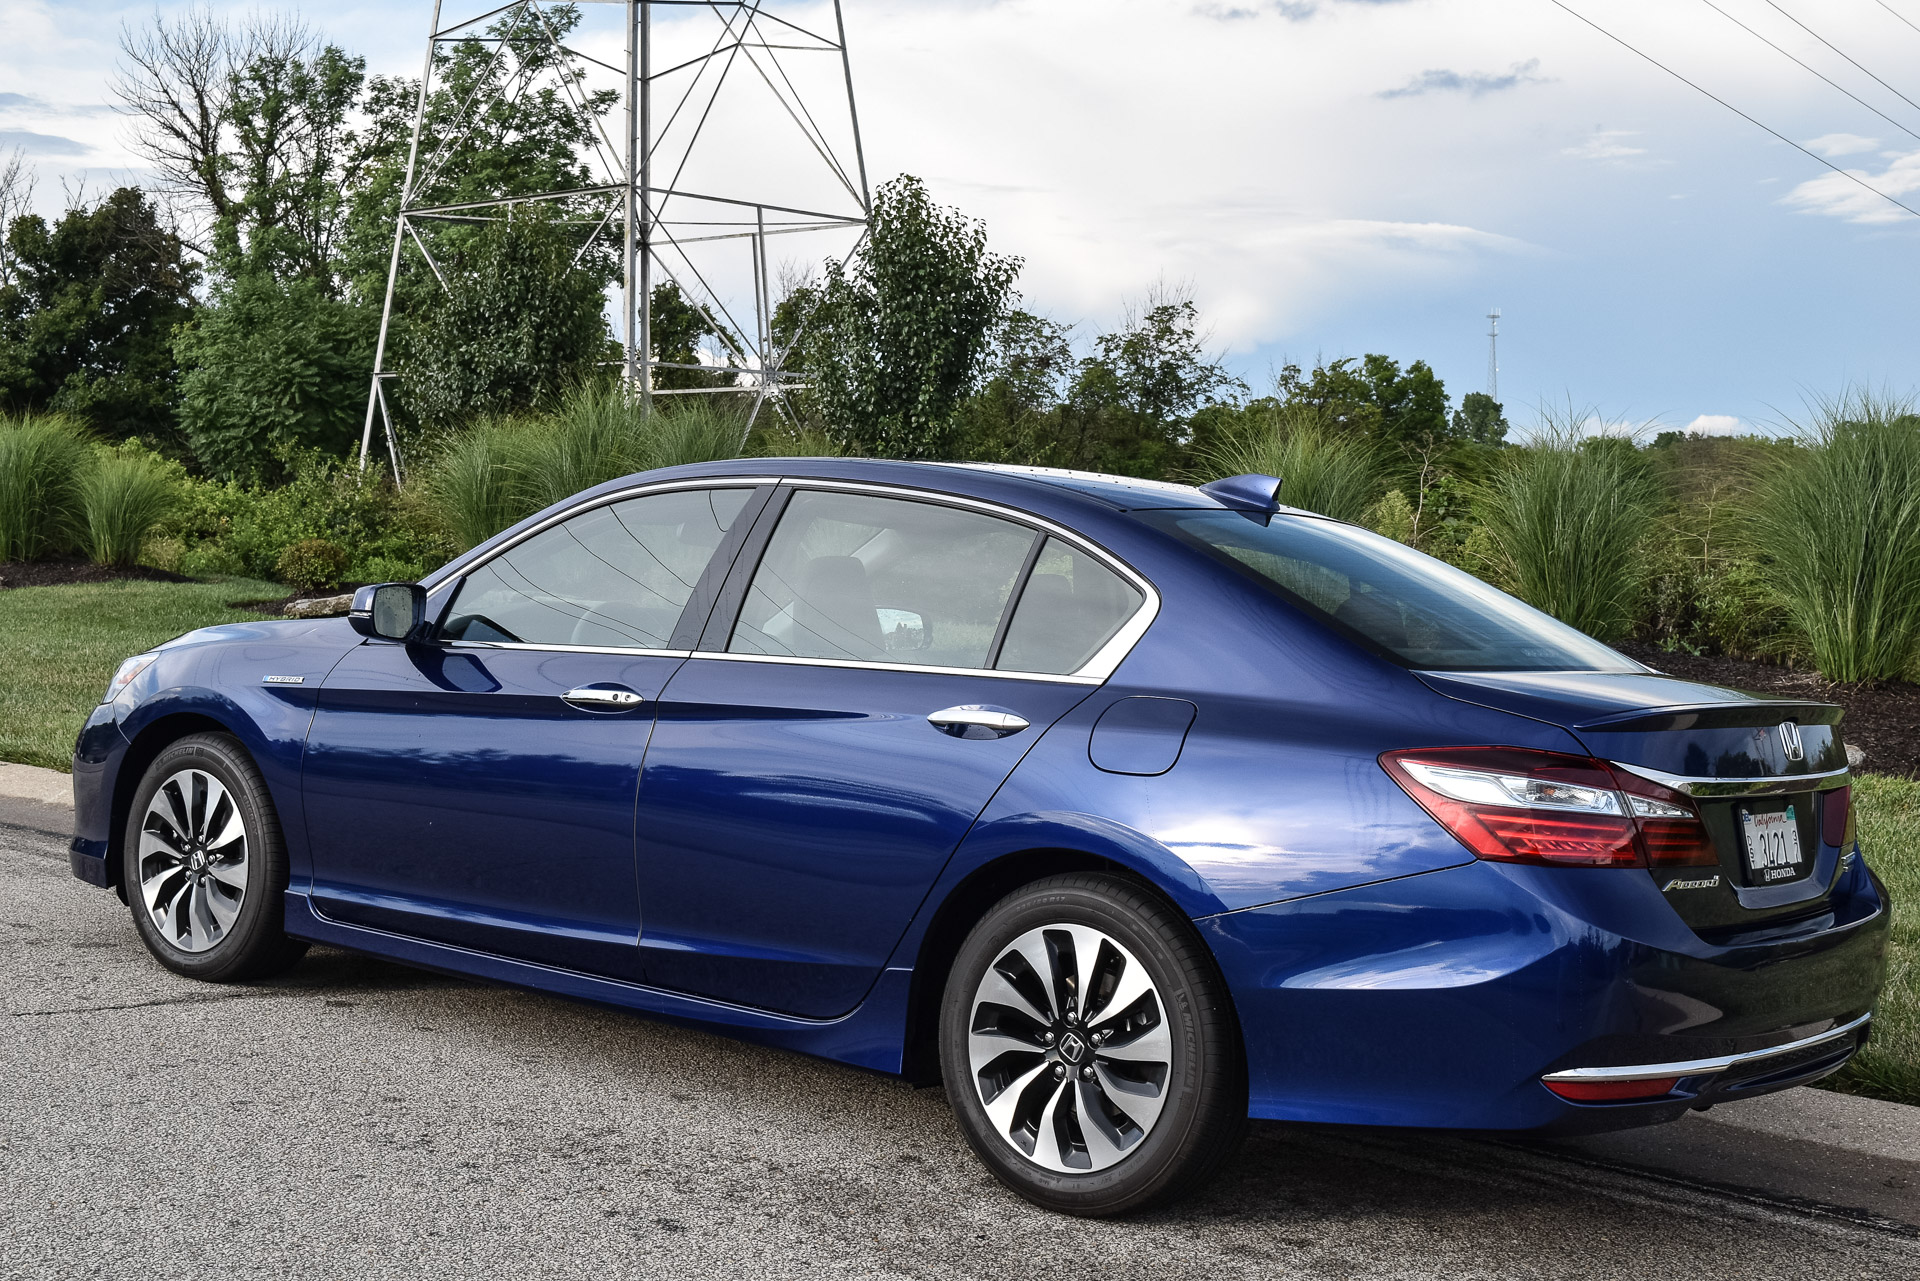 Review: 2017 Honda Accord Hybrid - 95 Octane